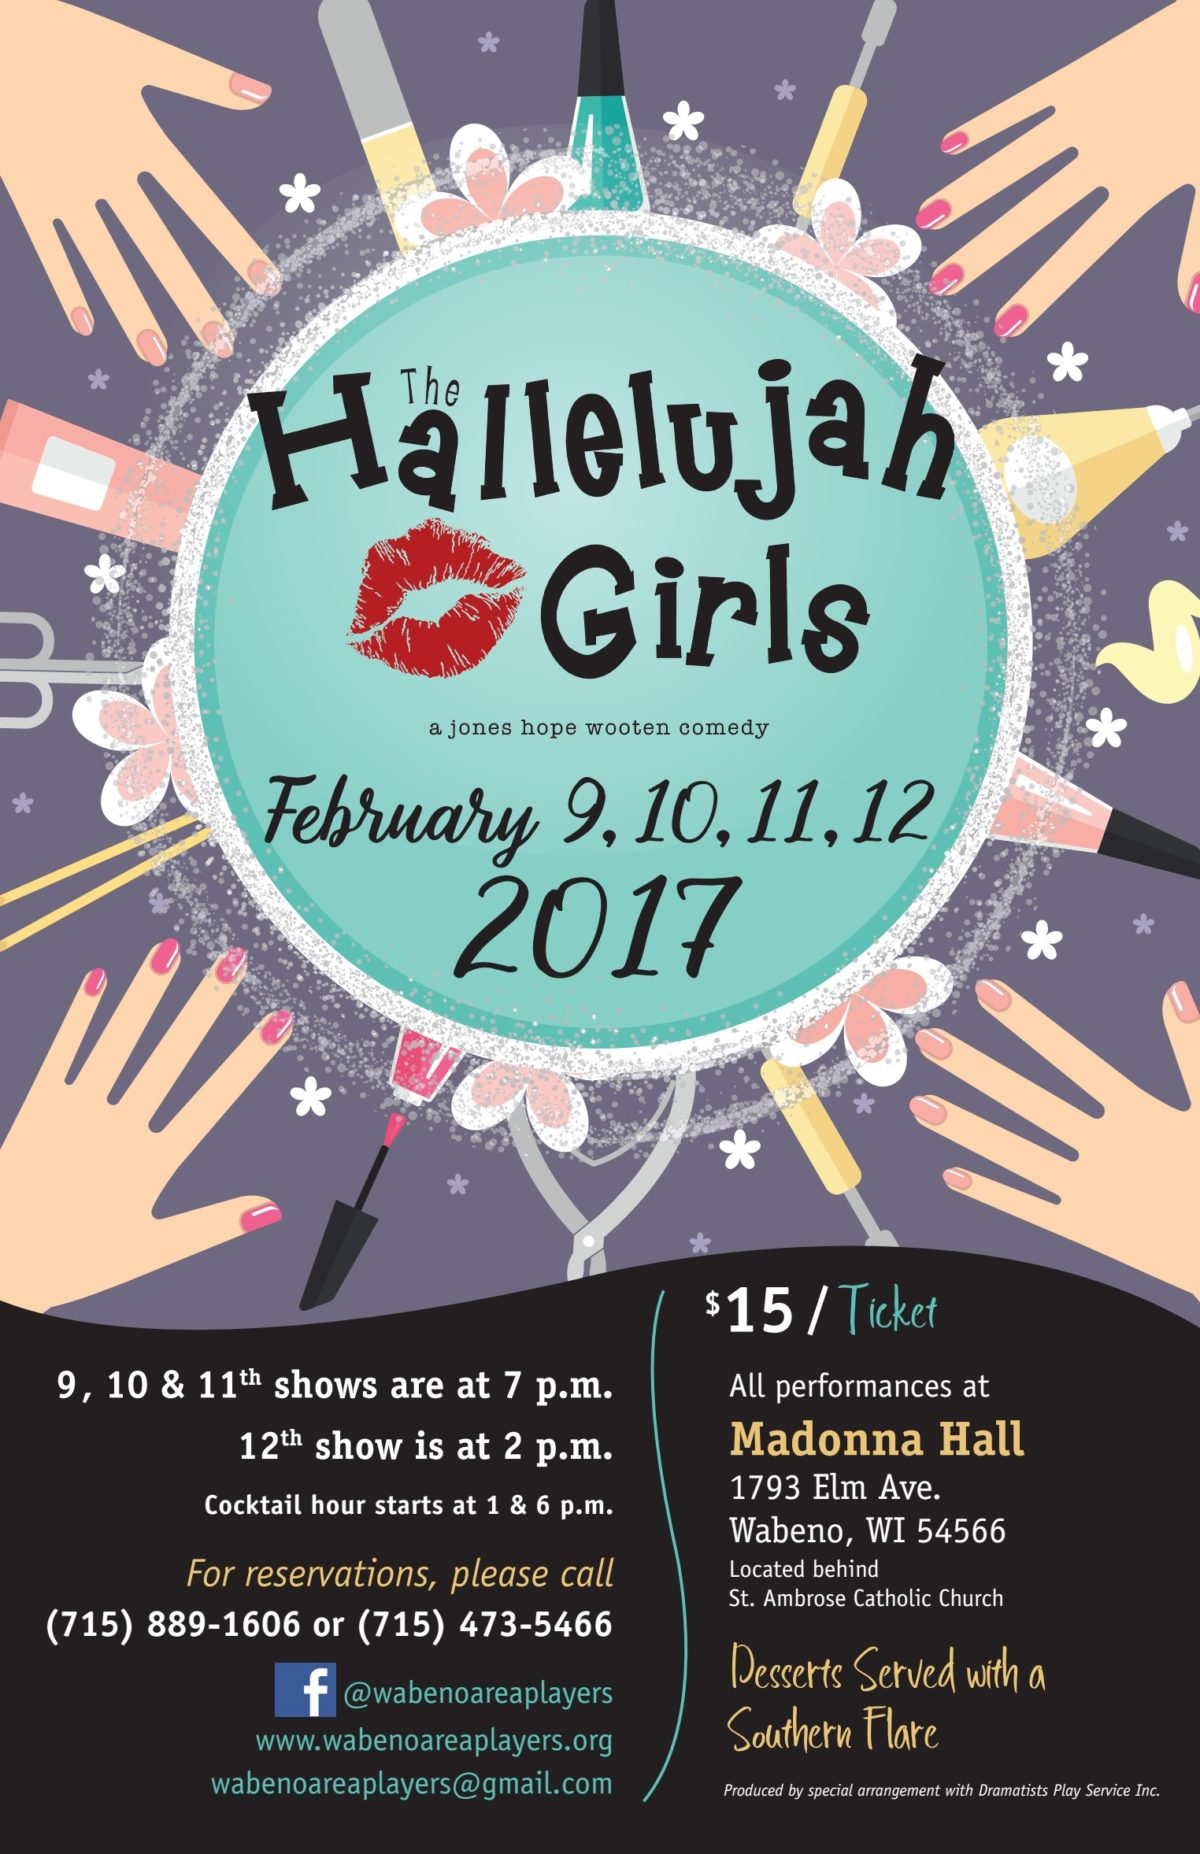 The Hallelujah Girls